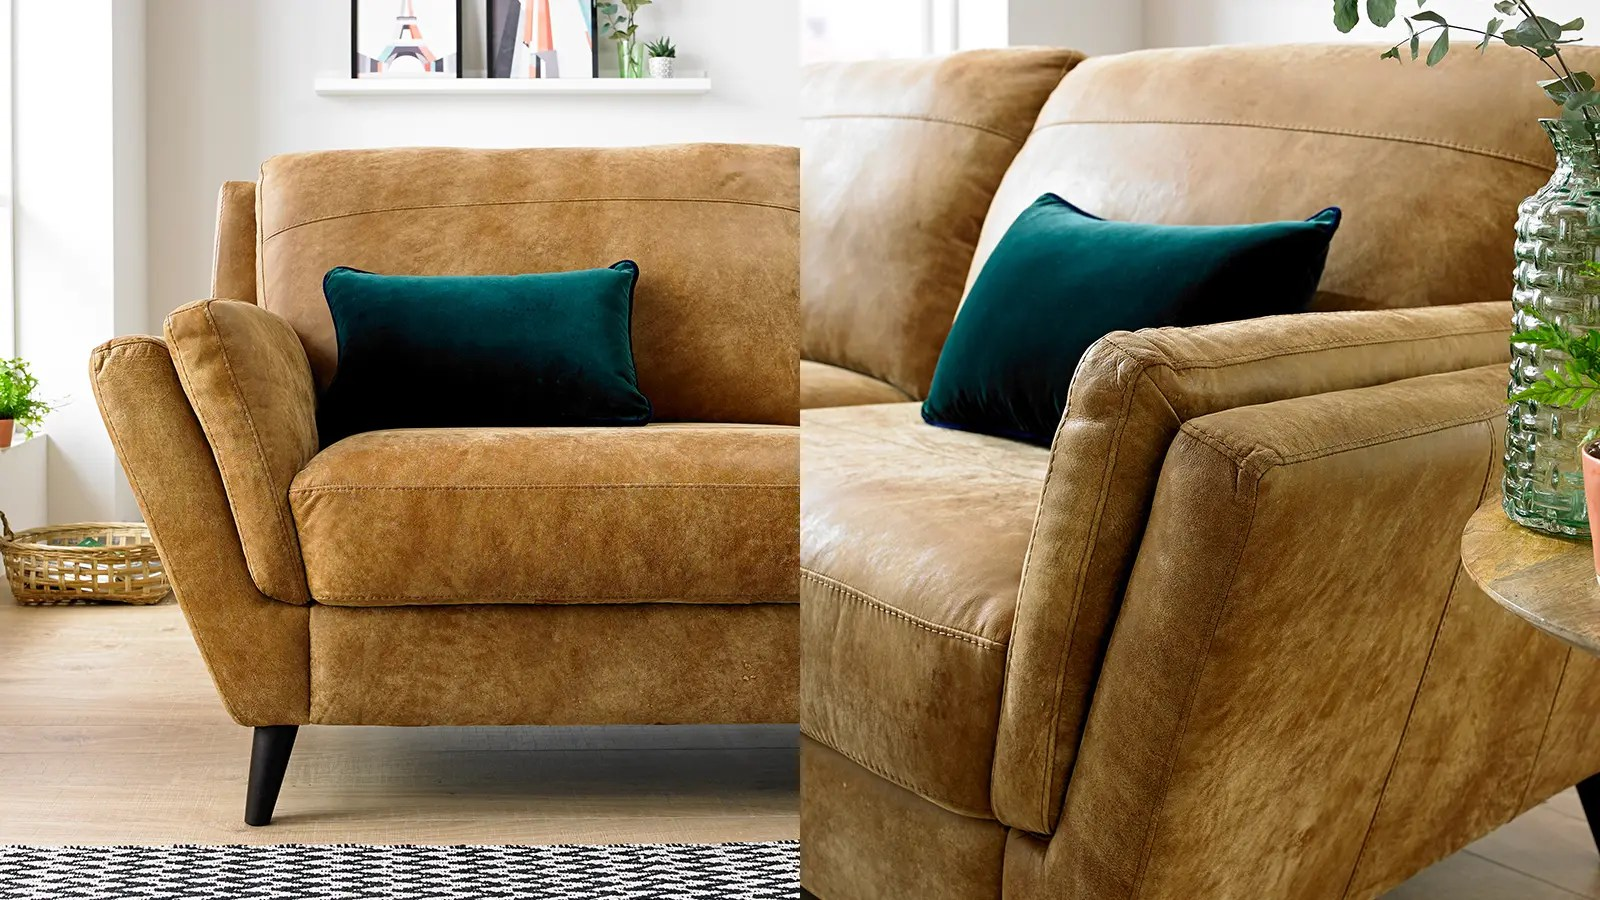 paloma sofa sofology cheapest place to buy sofas call csl phone number 0871 871 0760 spending quiet time on your alone or with family and friends